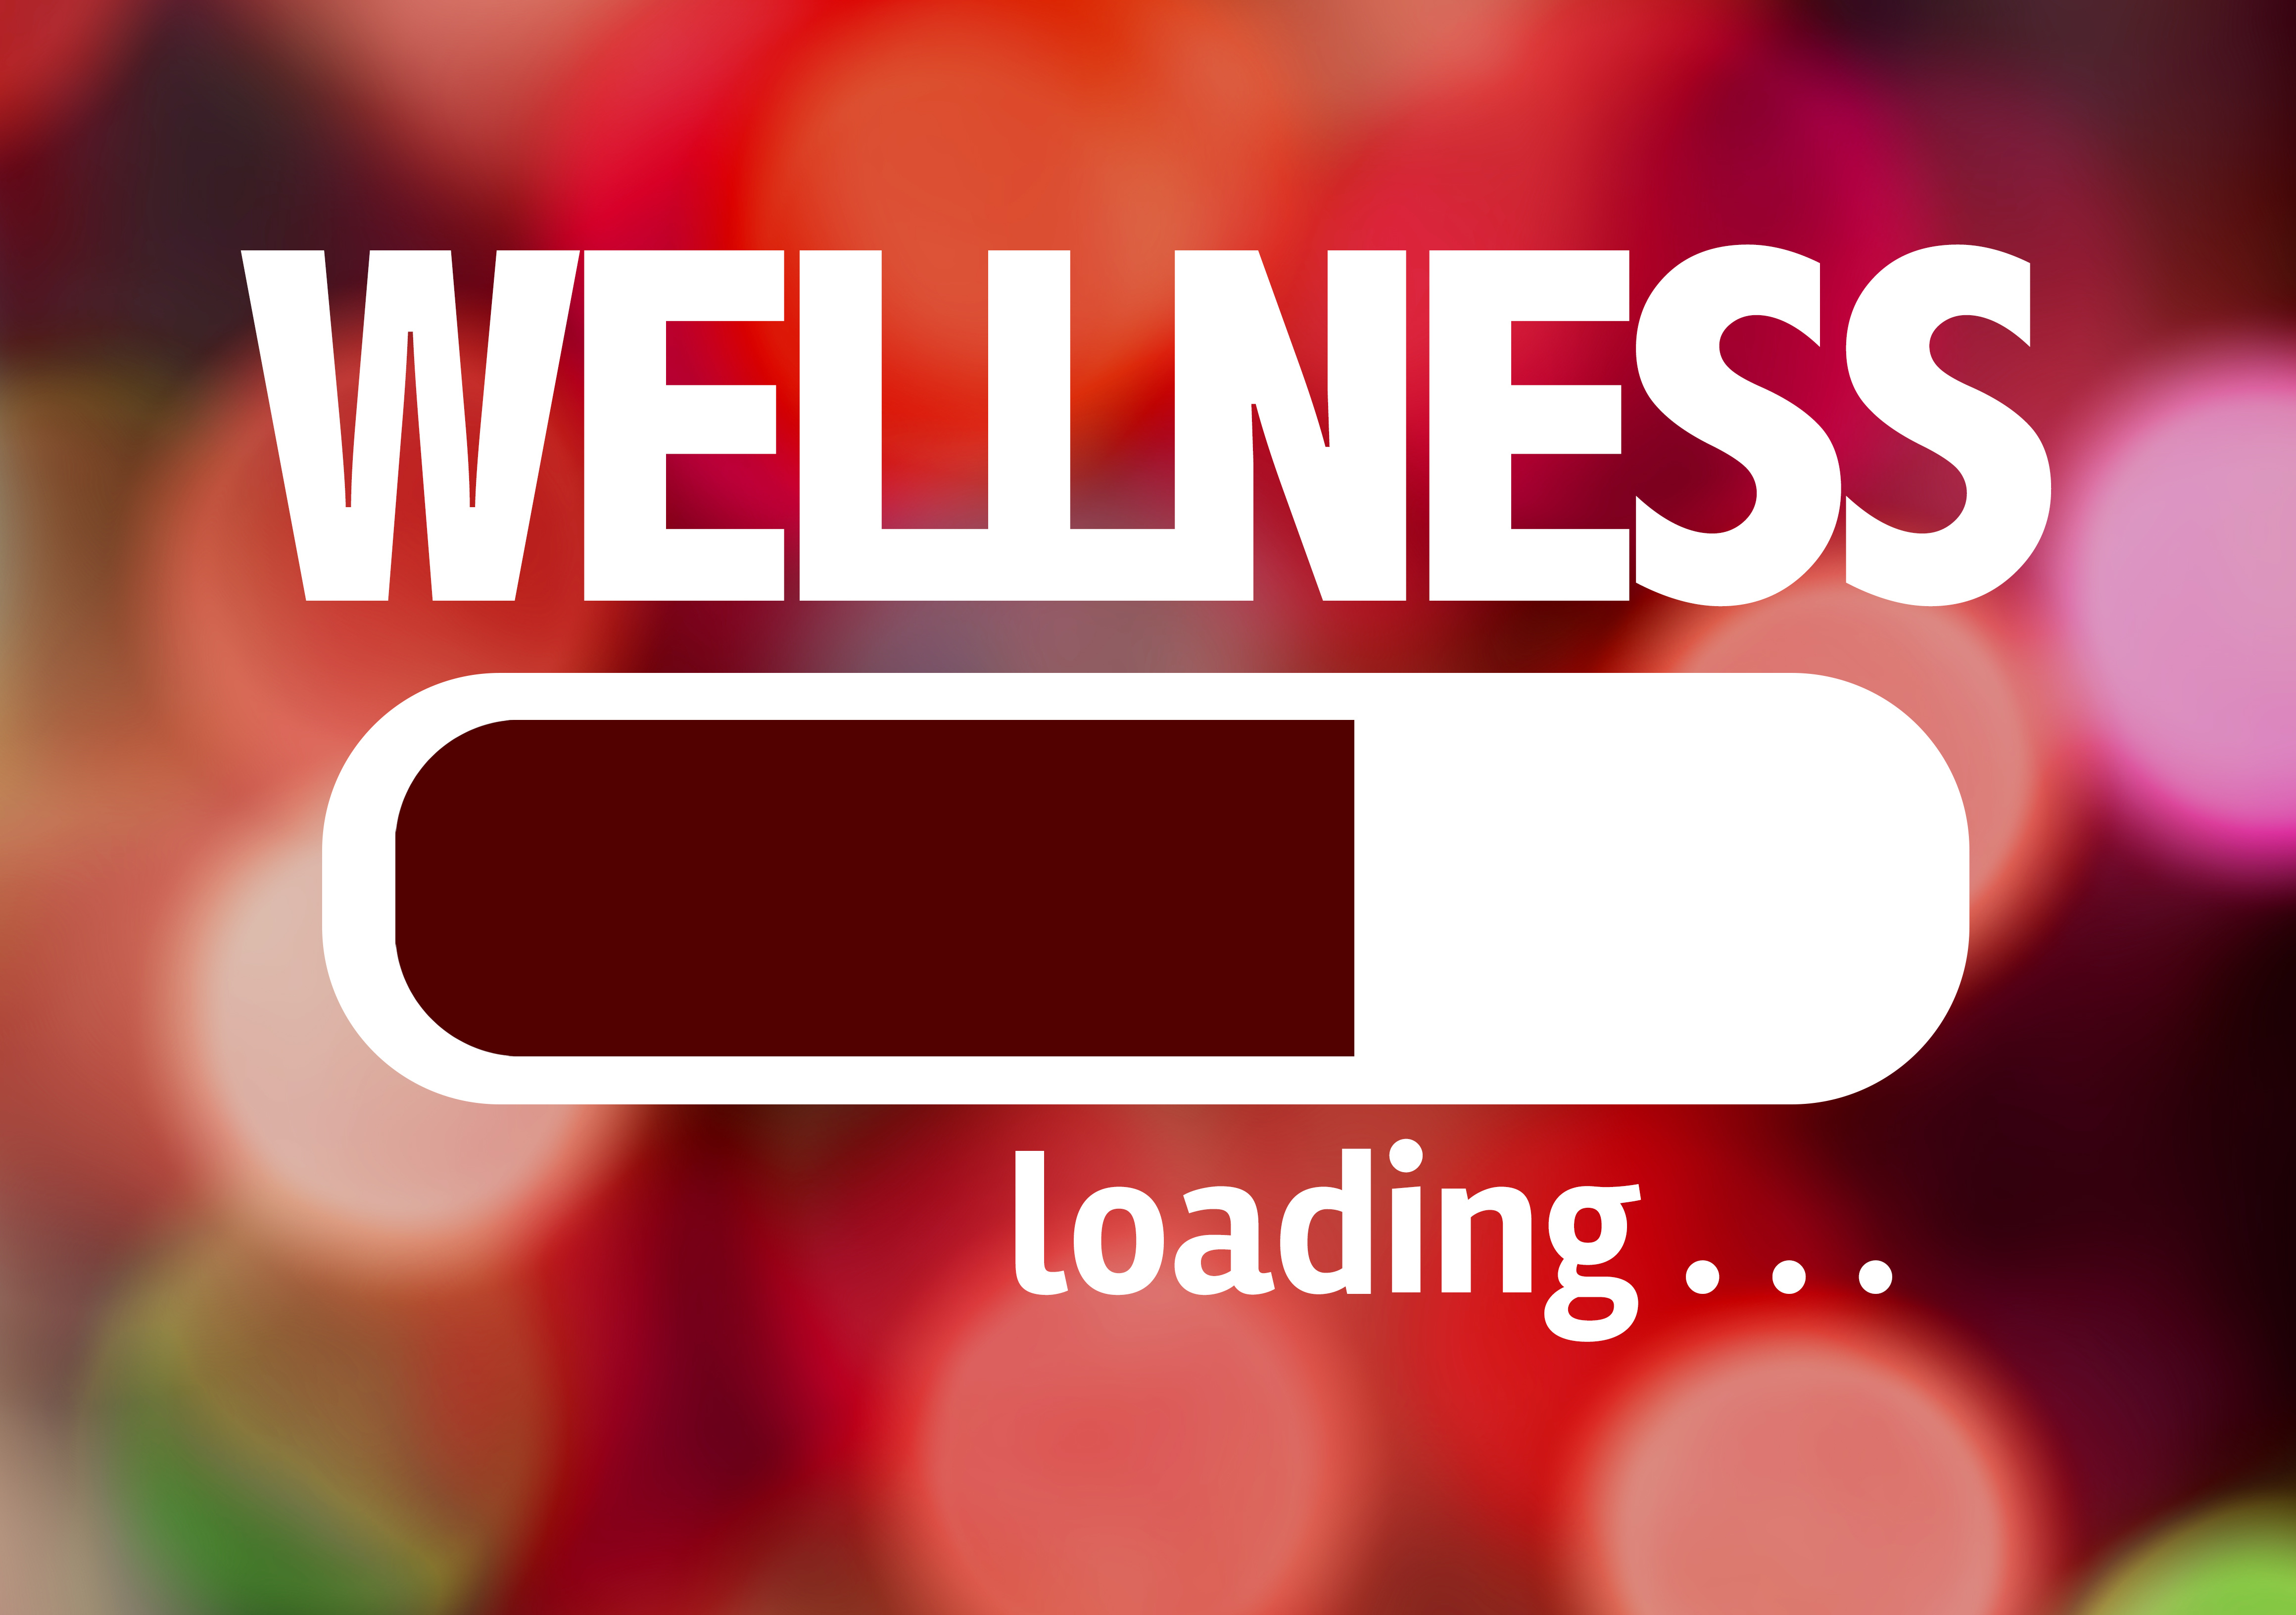 Progress Bar Loading with the text: Wellness